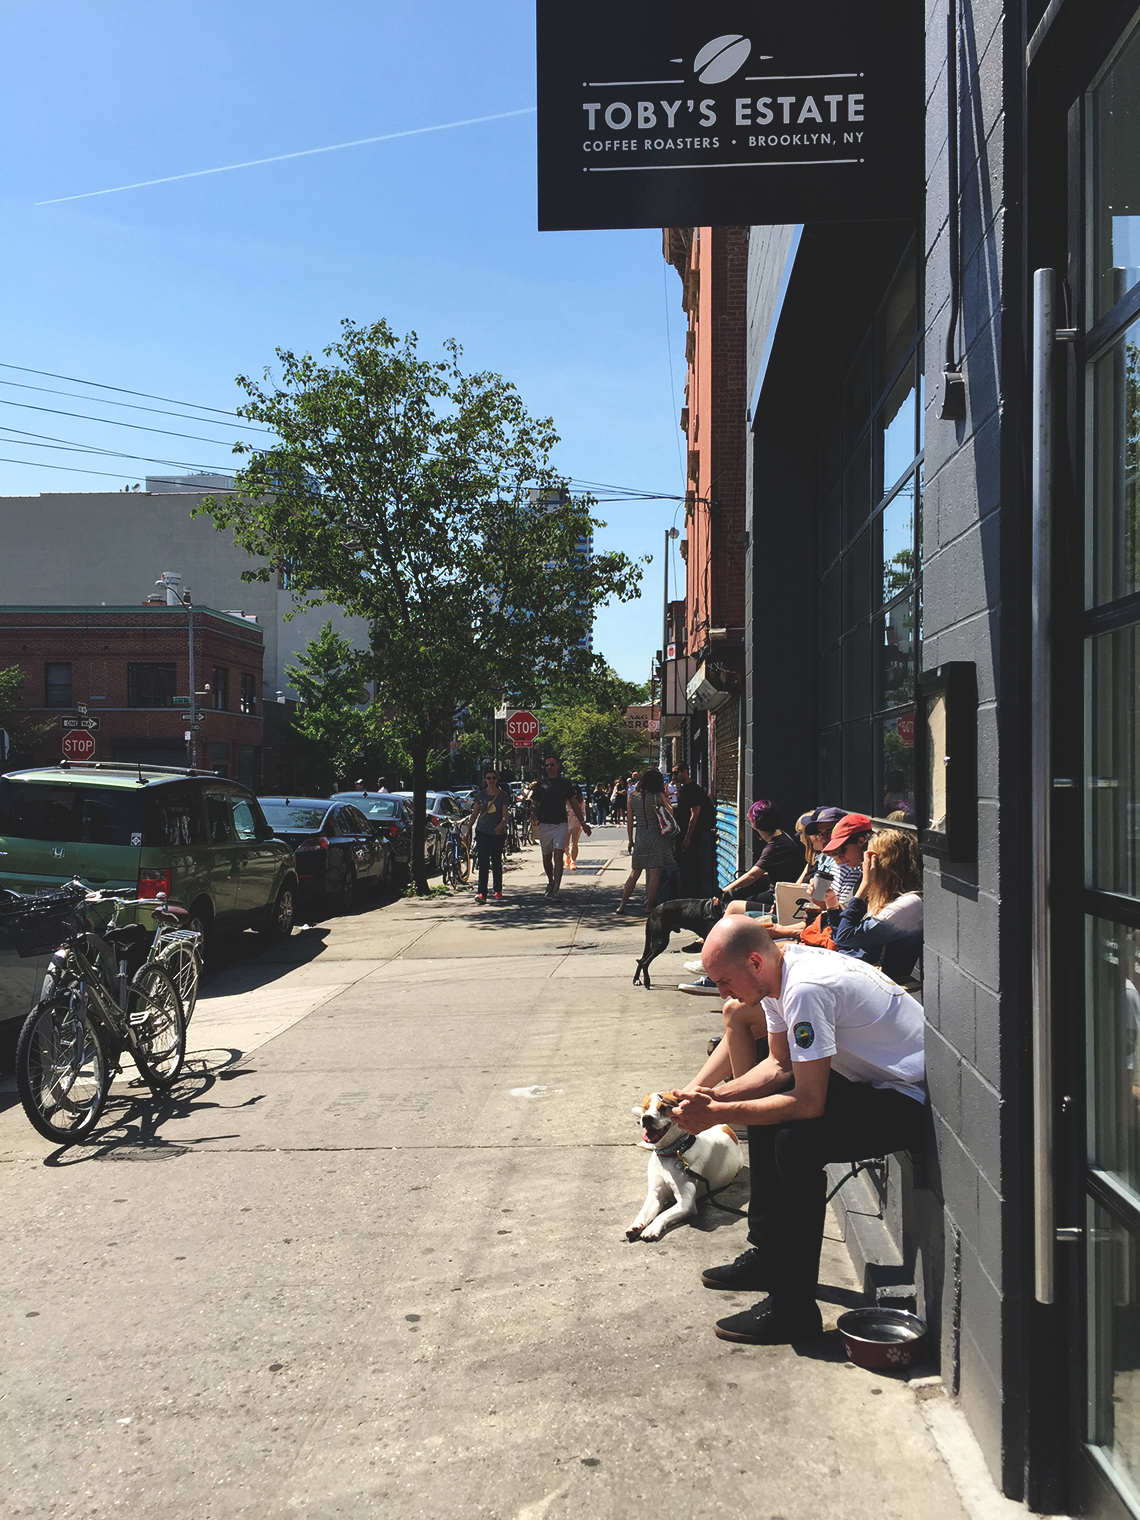 tobys estate coffee, williamsburg | outdoor seating summertime